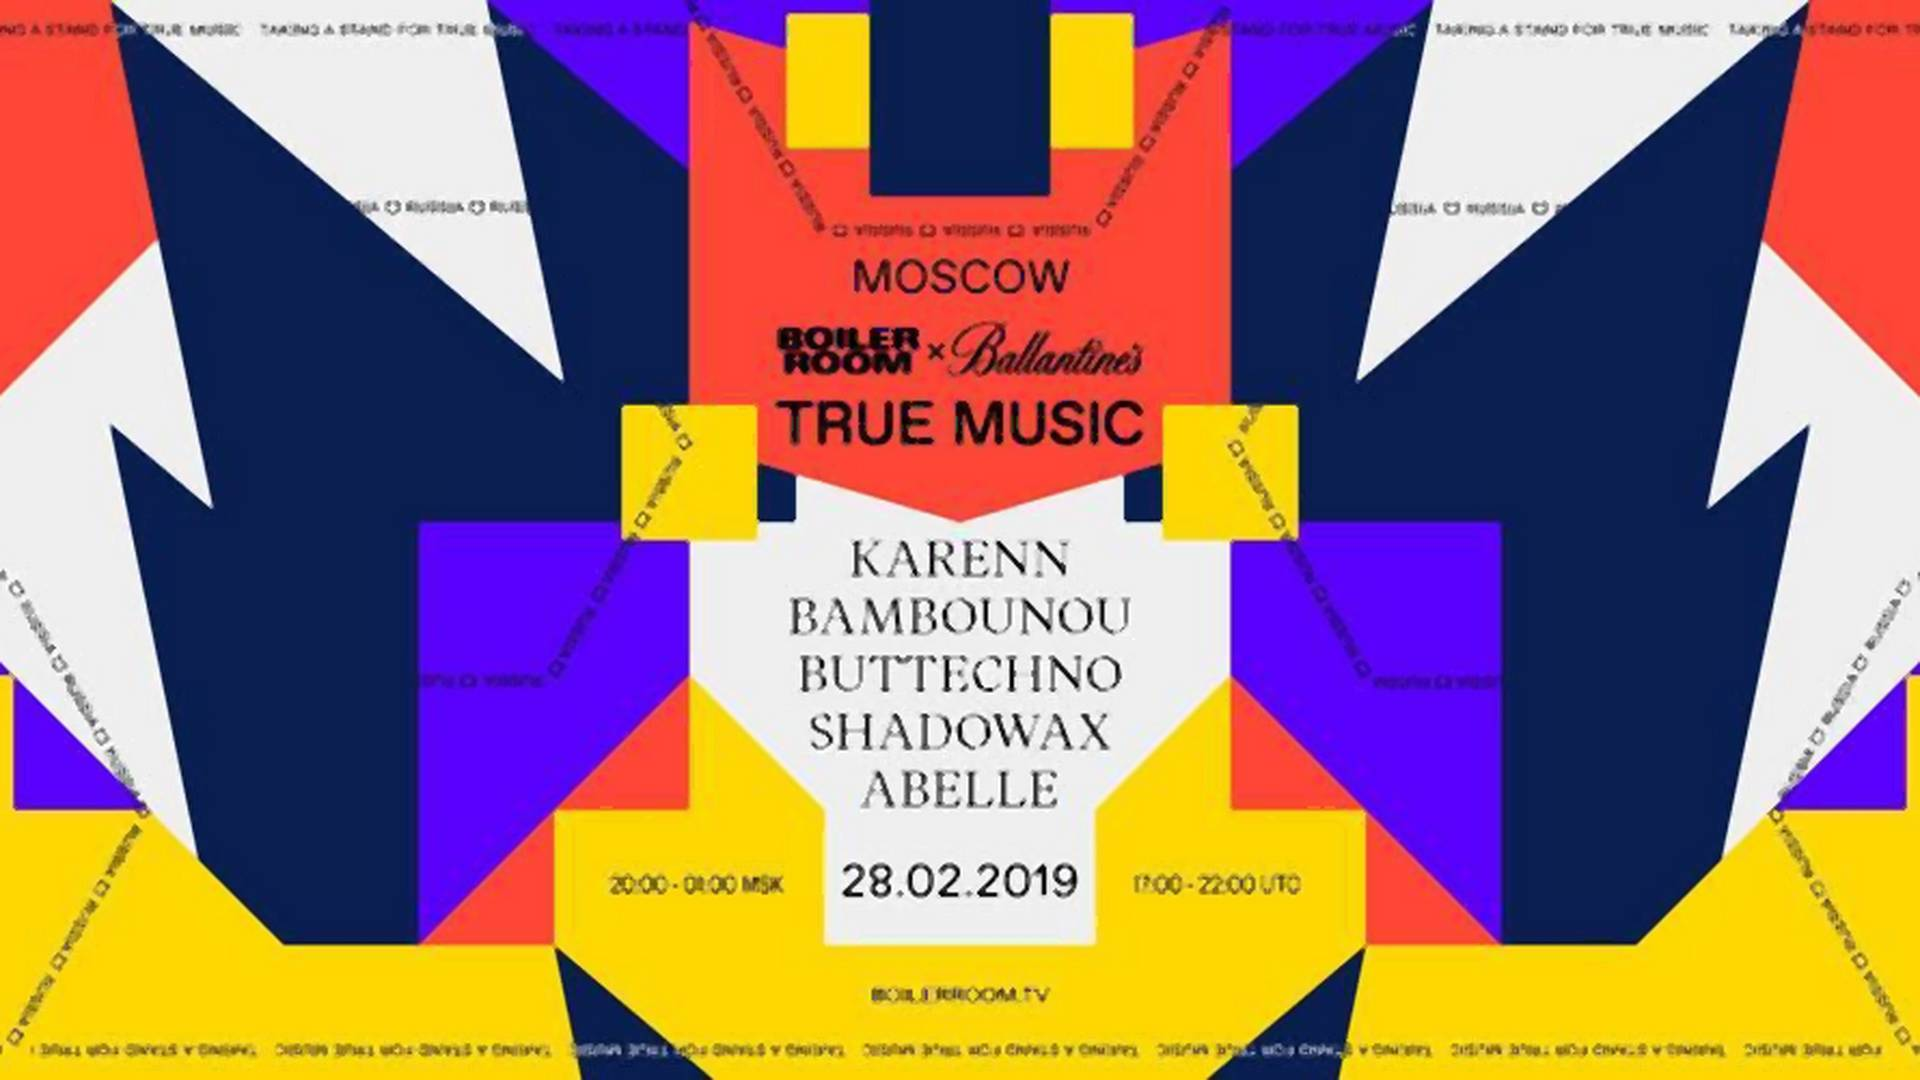 Jedziemy na Boiler Room x Ballantine's True Music do Moskwy